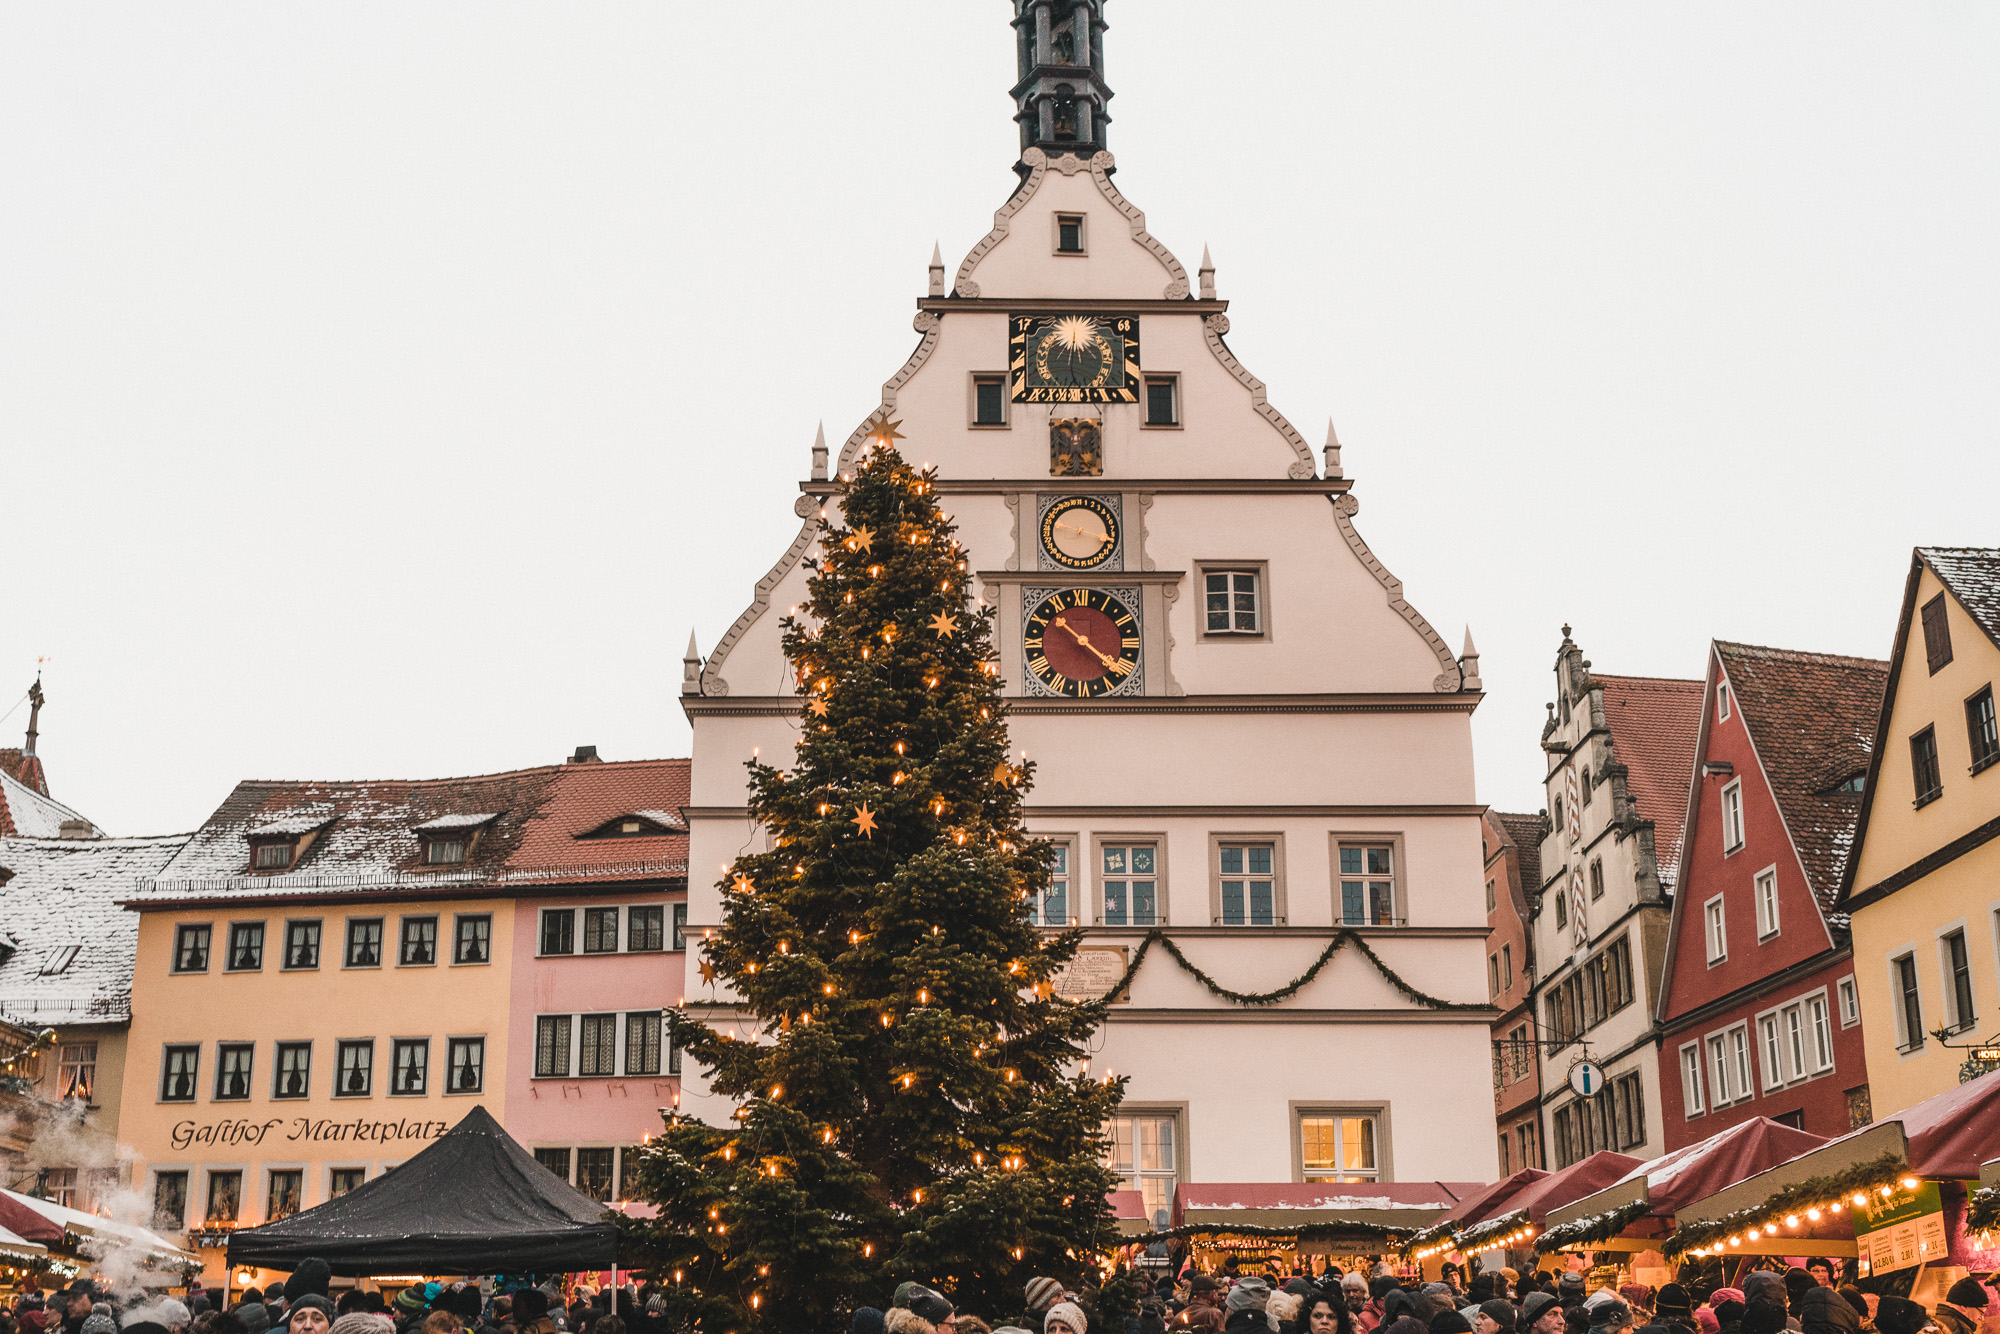 christmas markets in the square of rothenburg ob der tauber germany